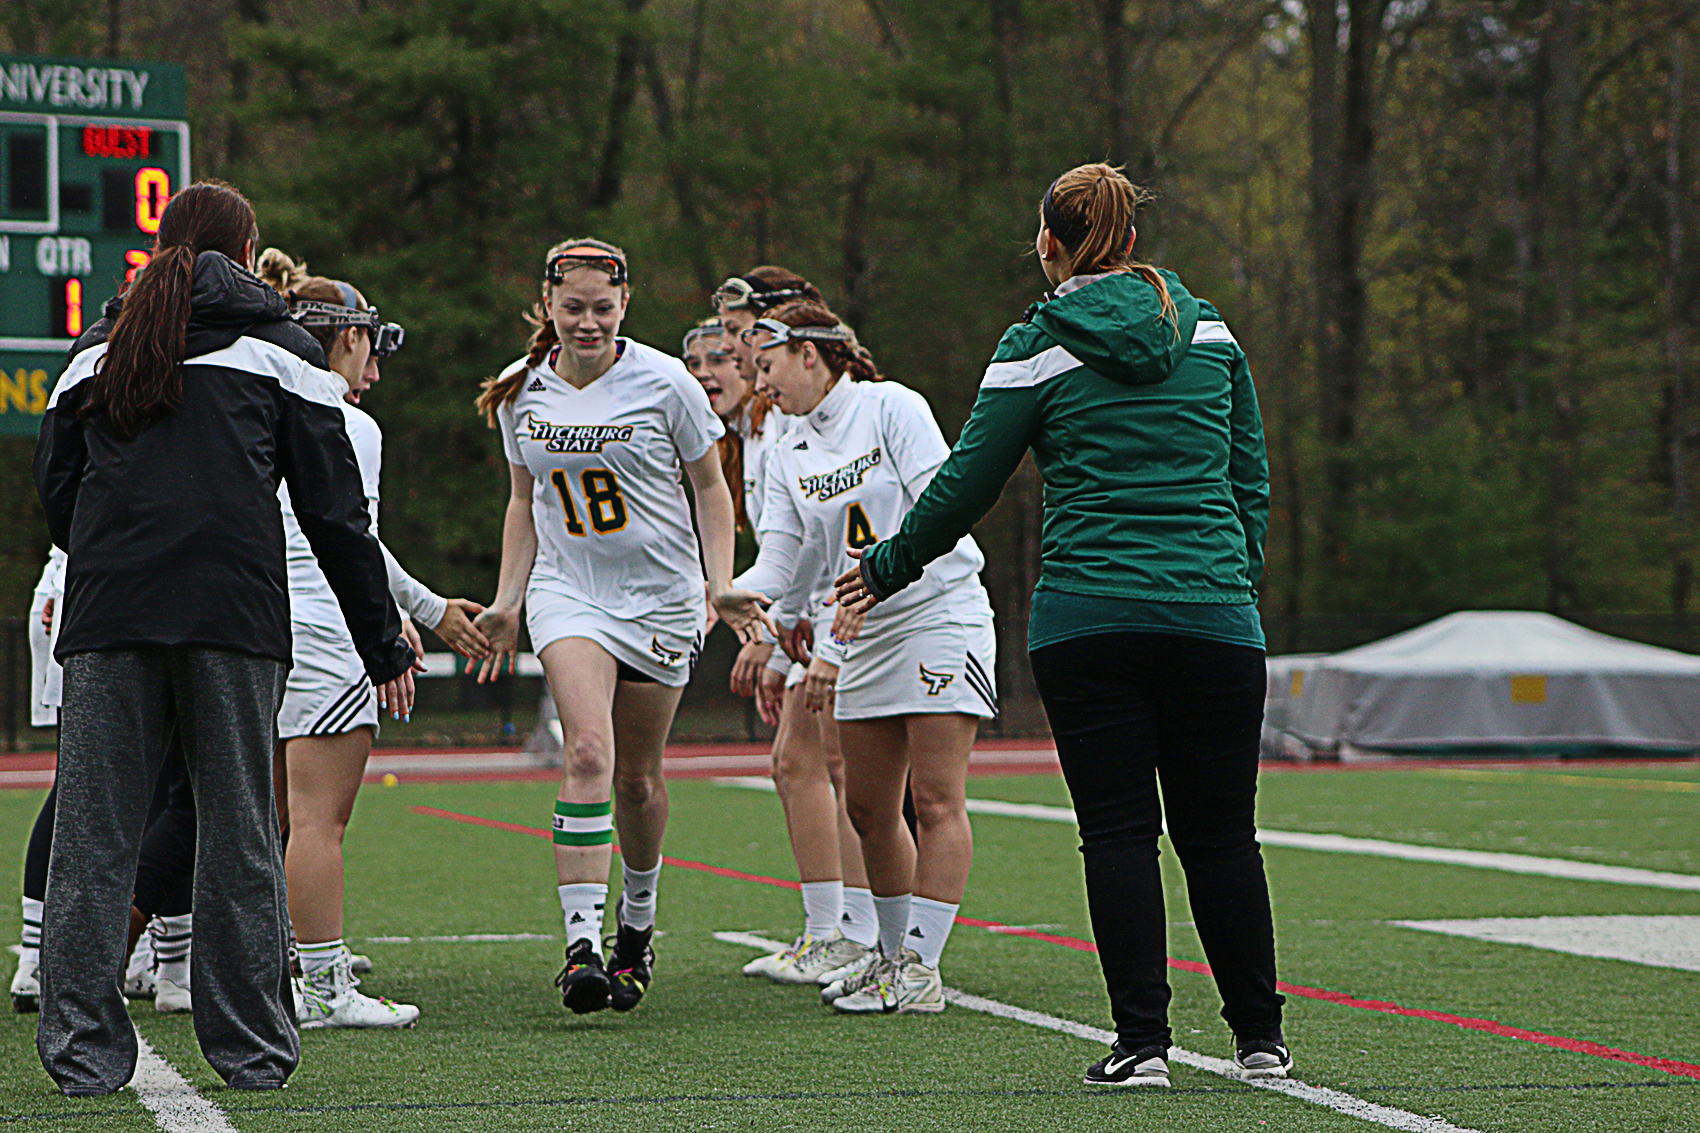 Fitchburg State Upended By Bridgewater State, 10-6